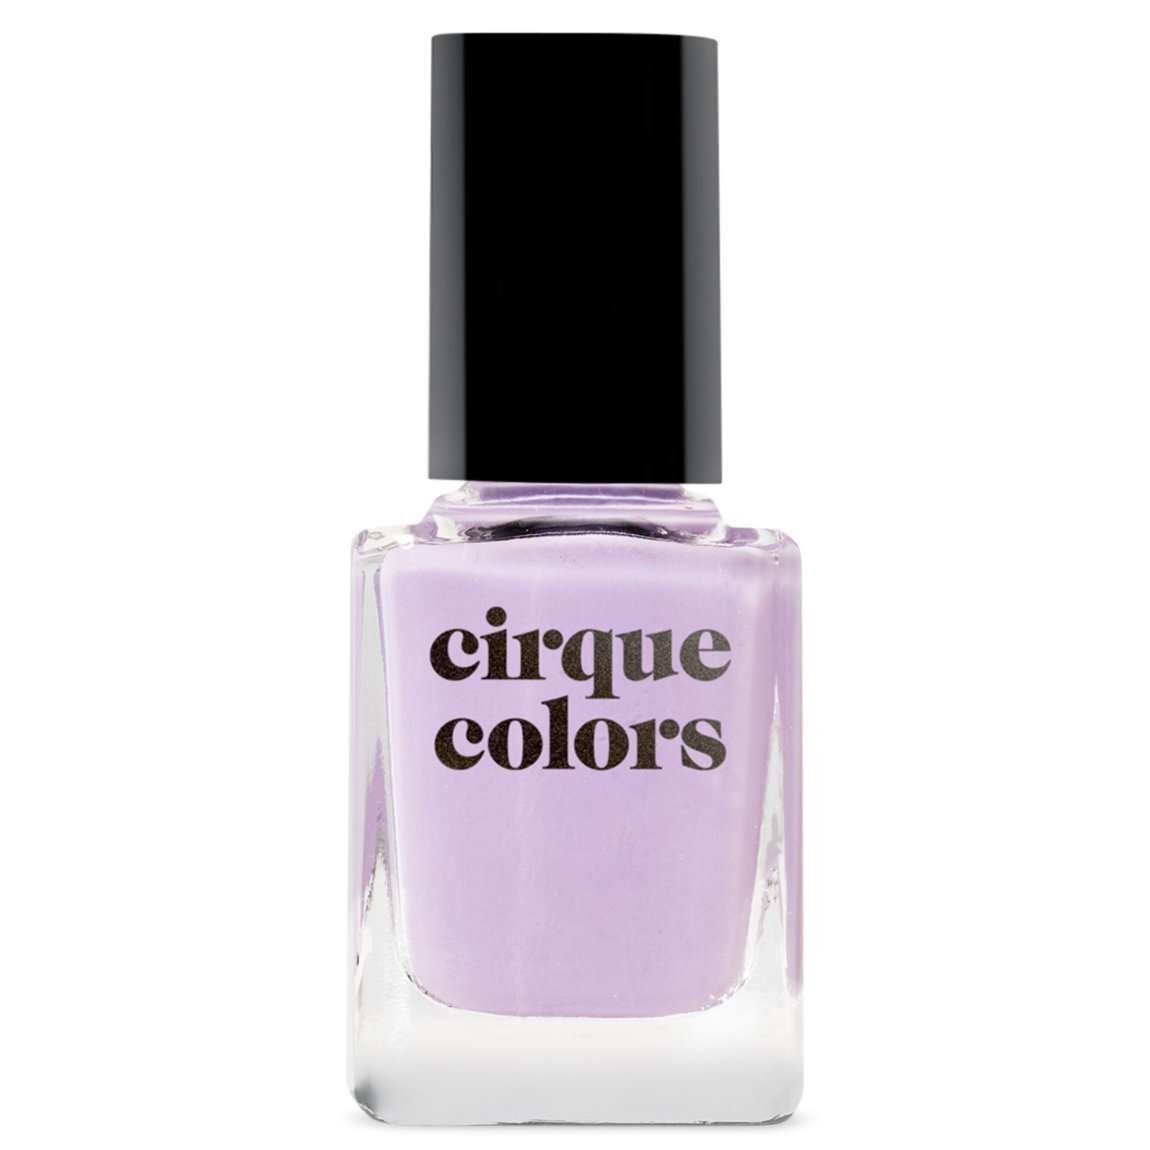 Cirque Colors Creme Nail Polish A Fiori alternative view 1 - product swatch.